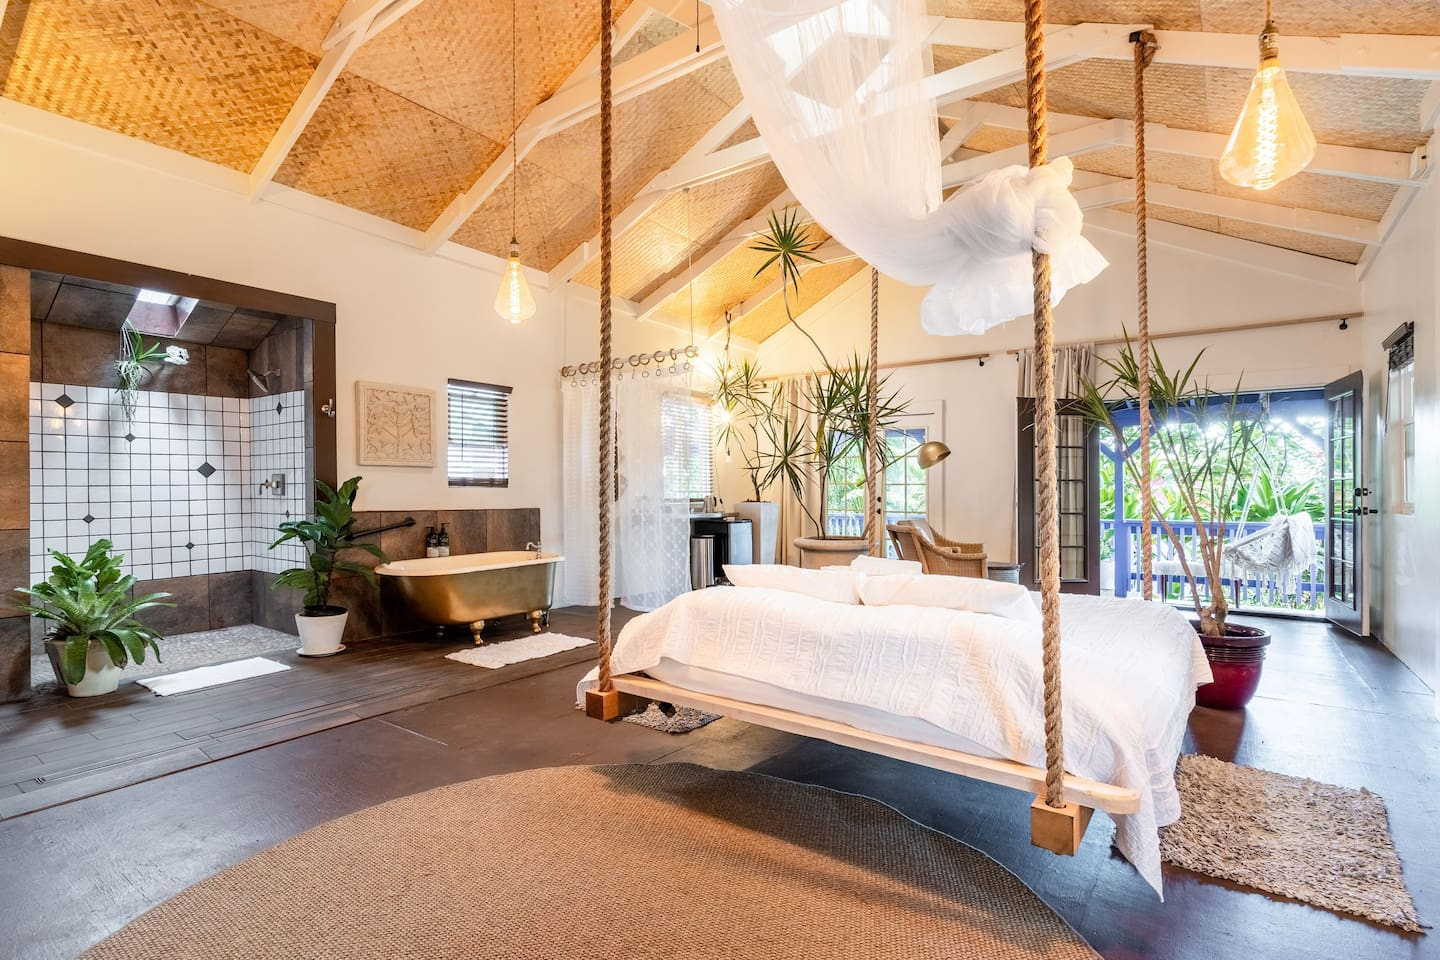 Sleep on a cloud ! This is a Cal King bed suspended from the ceiling with quality linens for a great night of rest nestled in this garden loft apartment. Clawfoot tub and light filled shower add to the options for guests to relax and unwind.